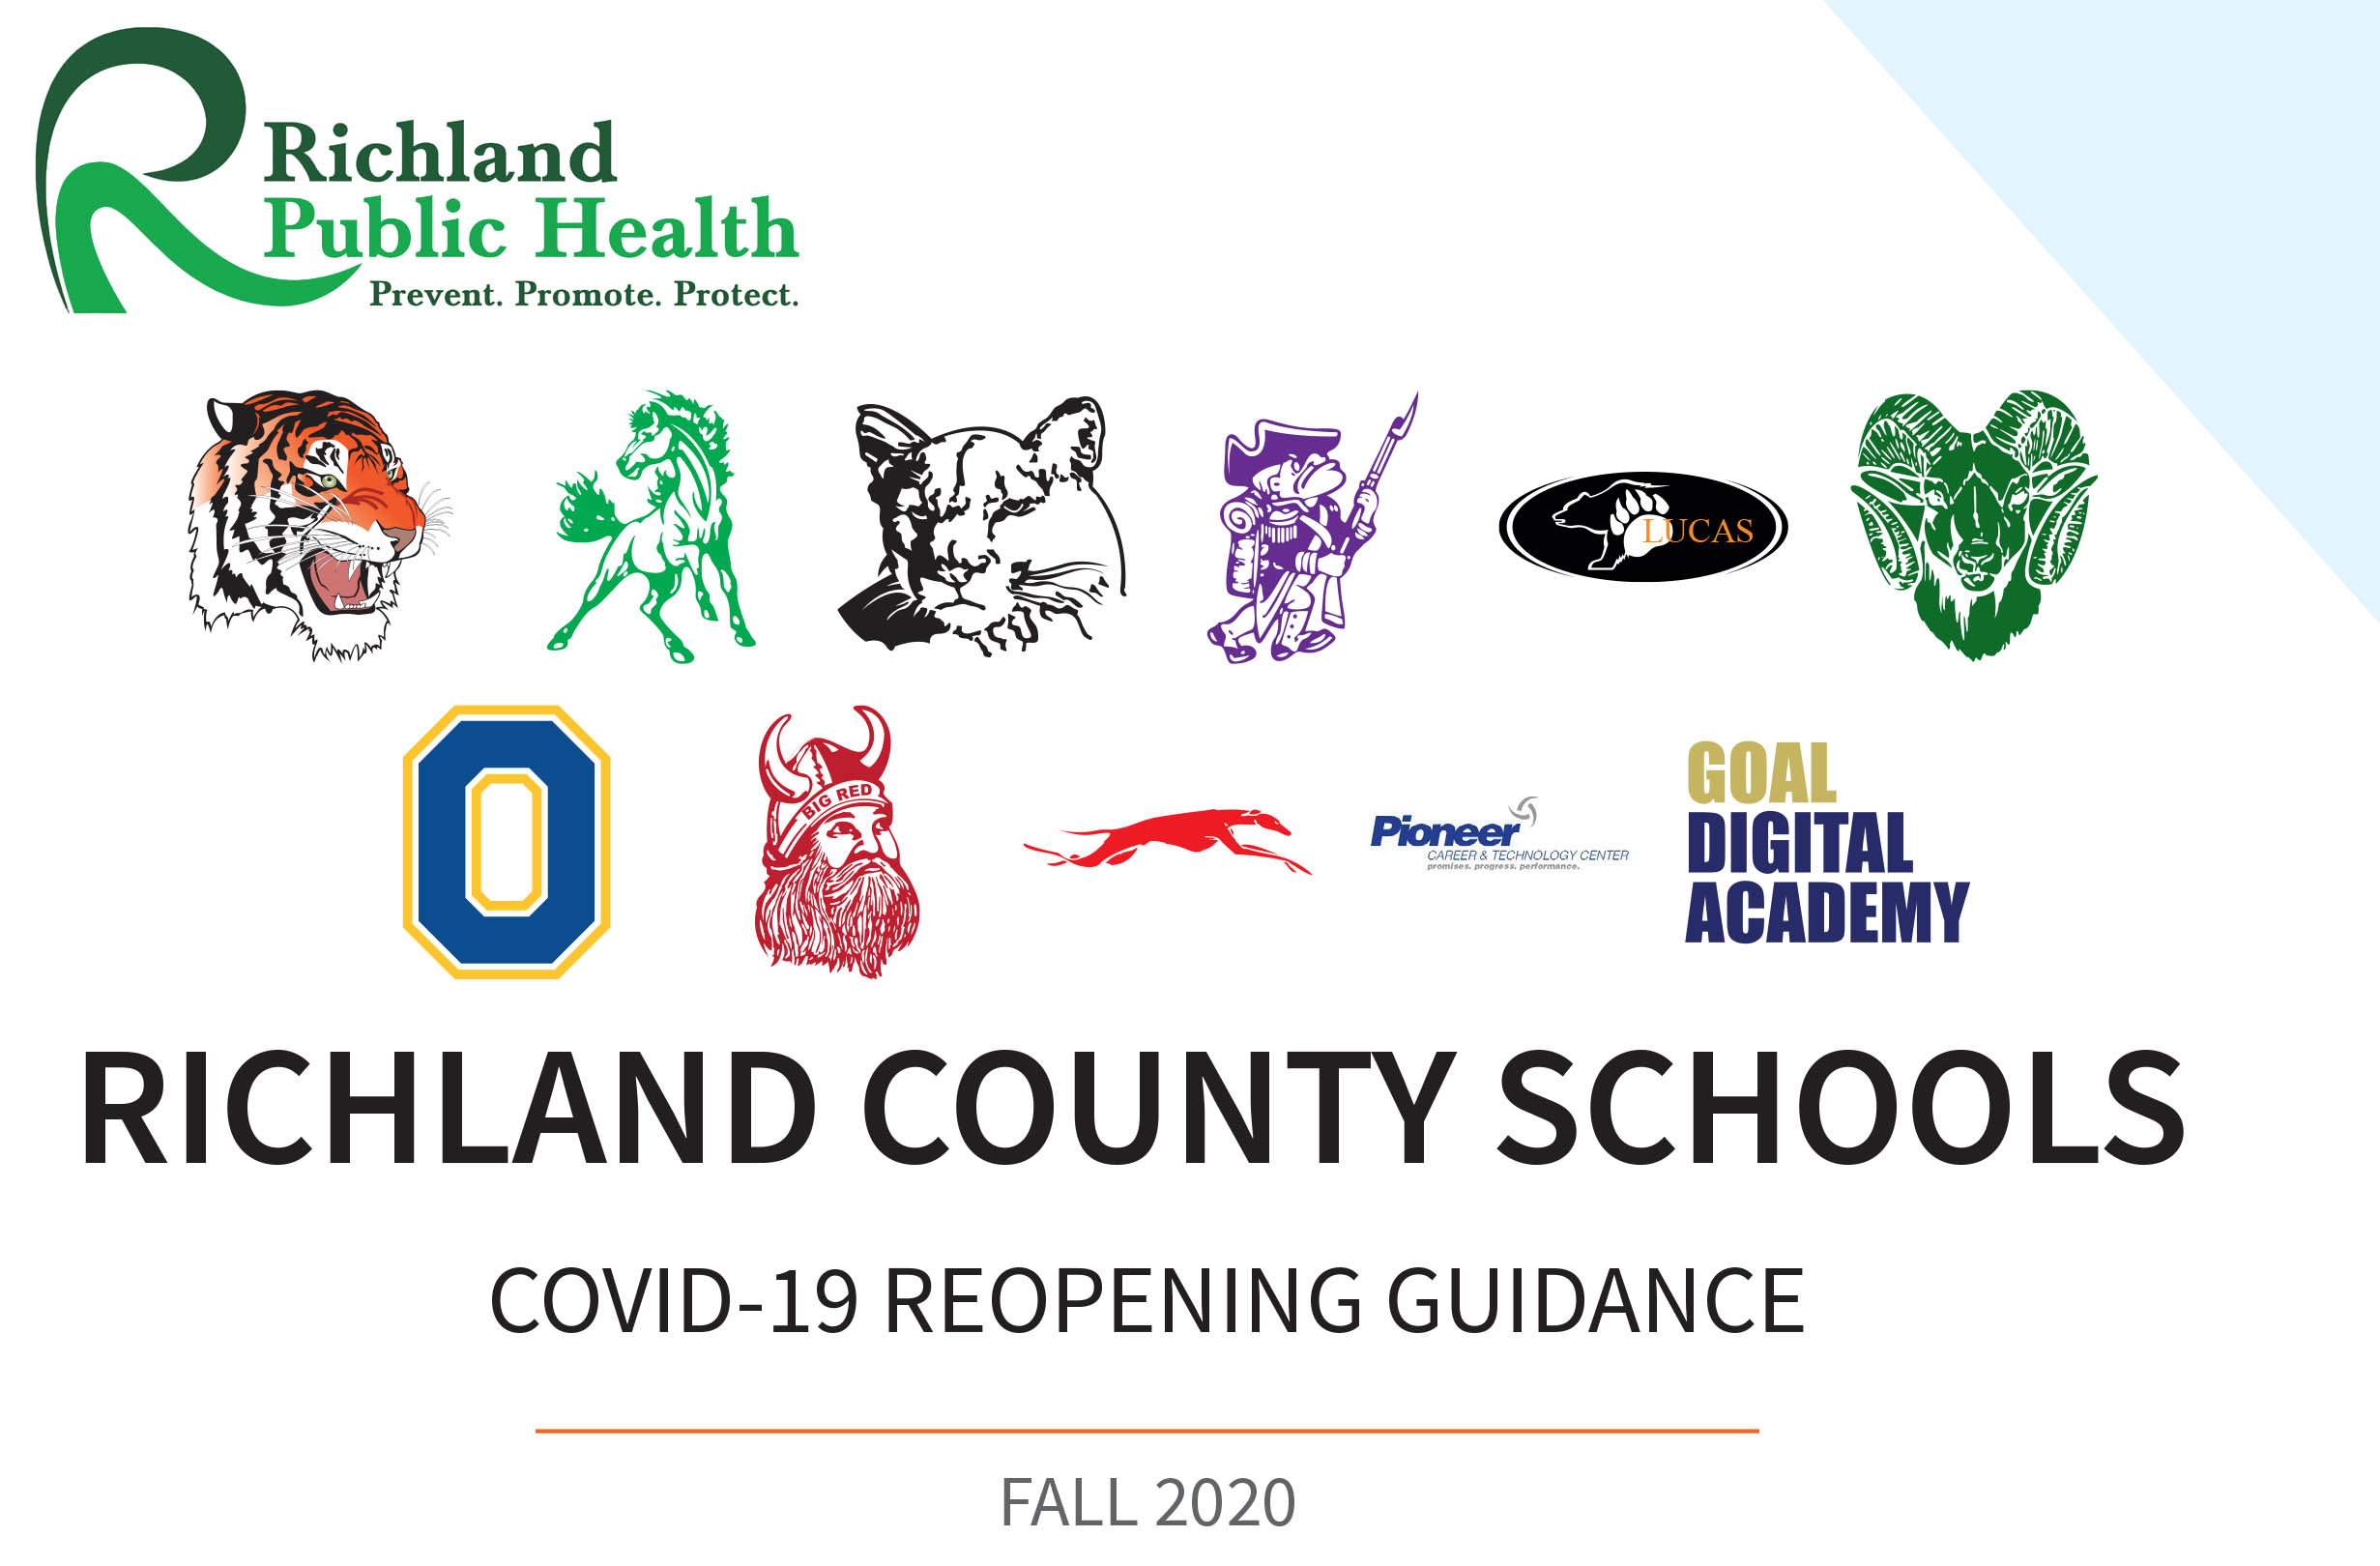 RC COVID 19 REOPENING GUIDANCE FALL 2020